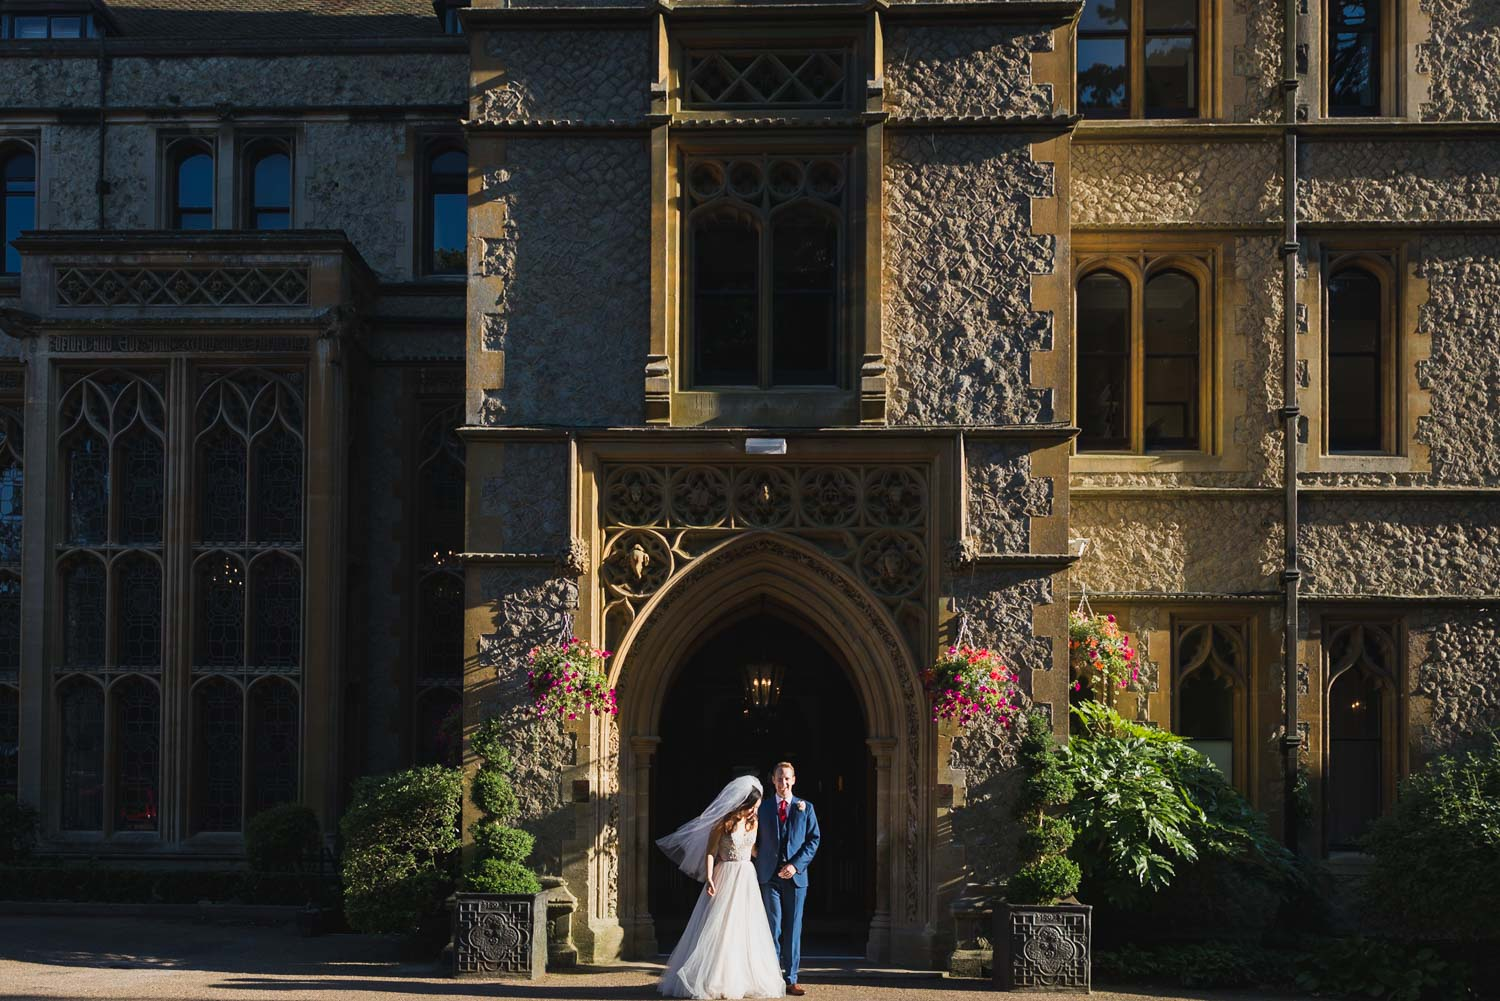 Nutfield Priory Wedding portrait, Carine Bea Photography